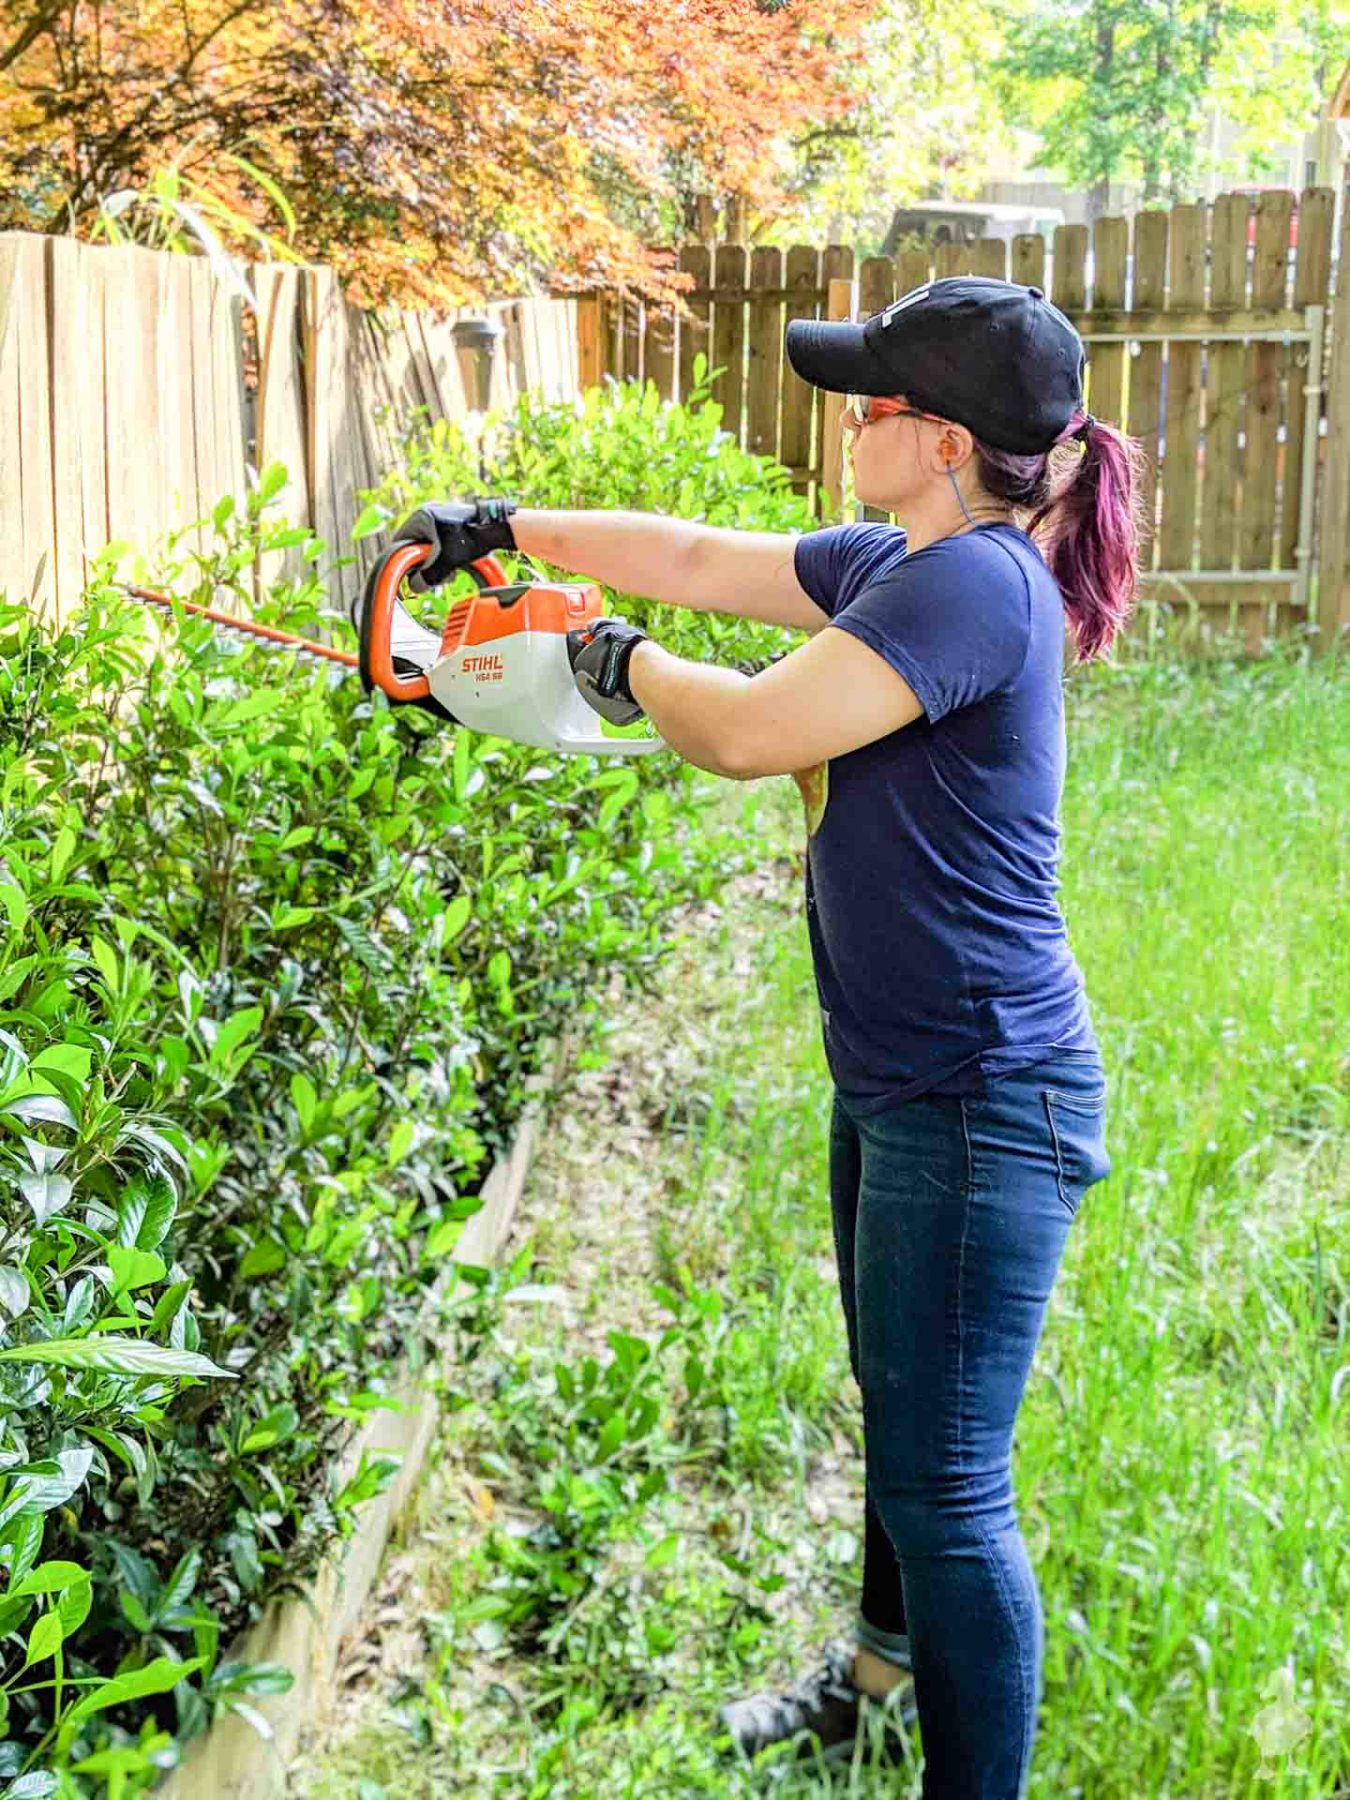 STIHL battery powered hedge trimmer